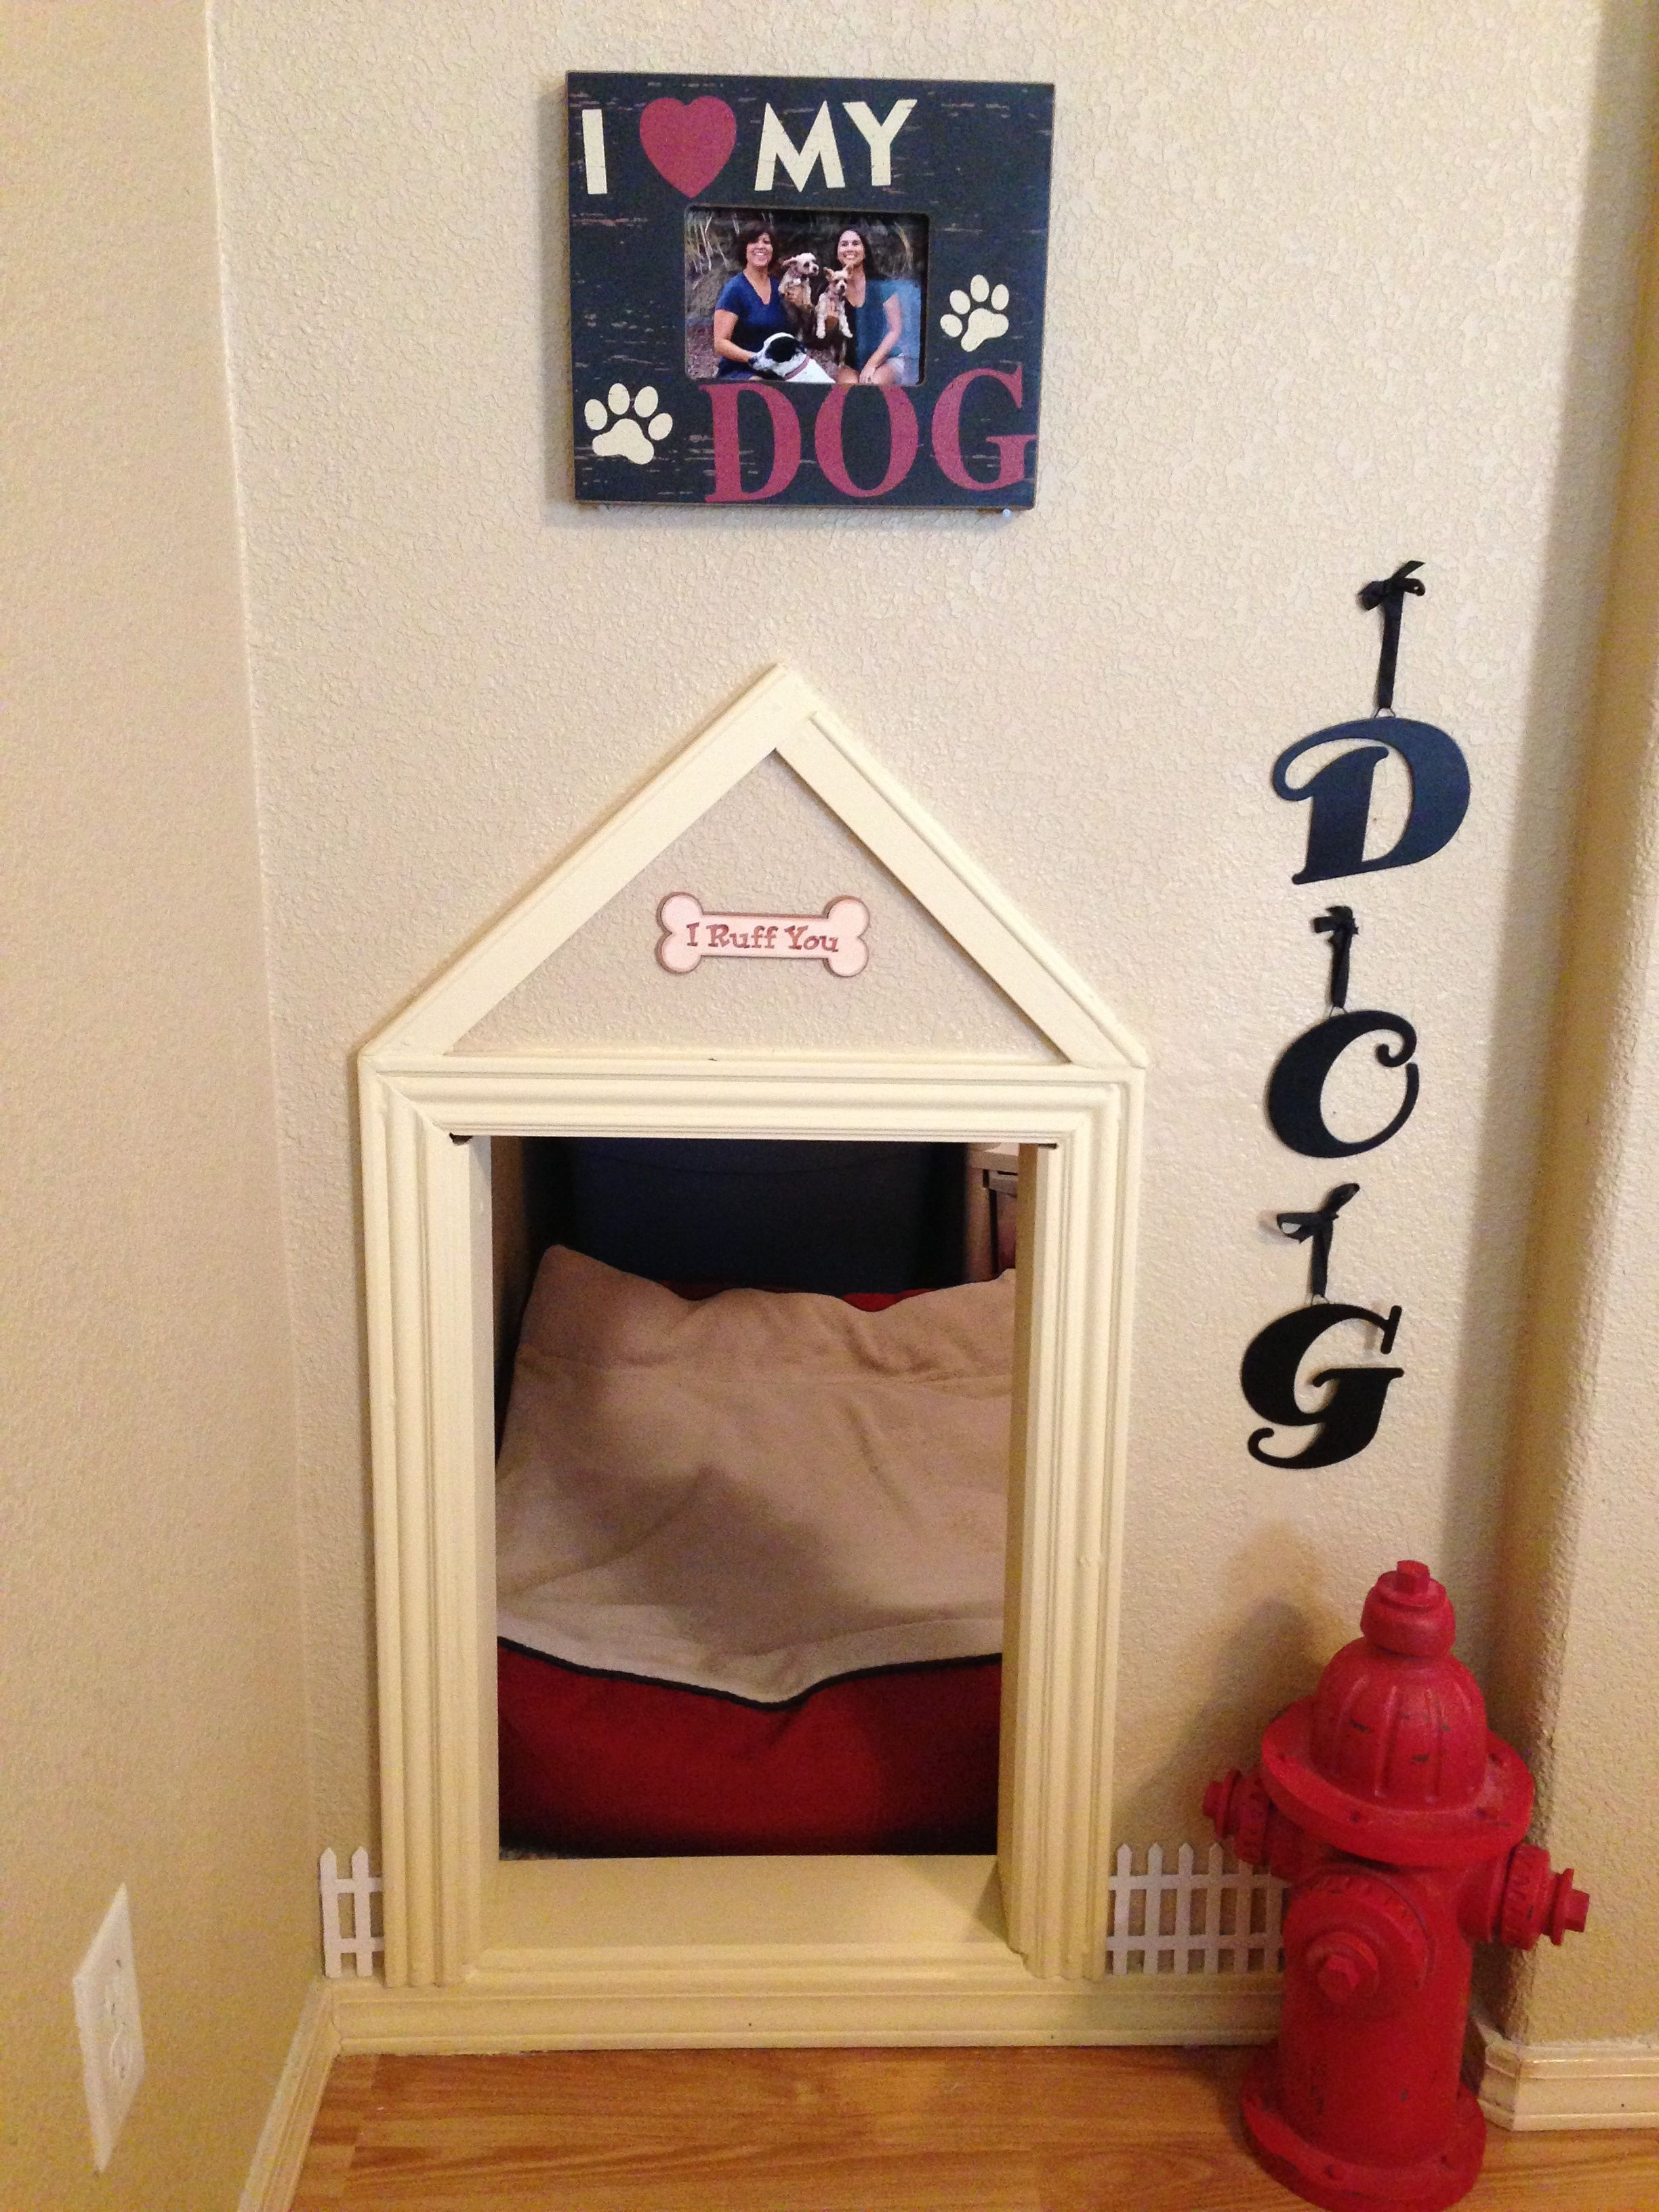 Built in dog house for my puppies Kitchen & Bath Depot in Rome, GA ...